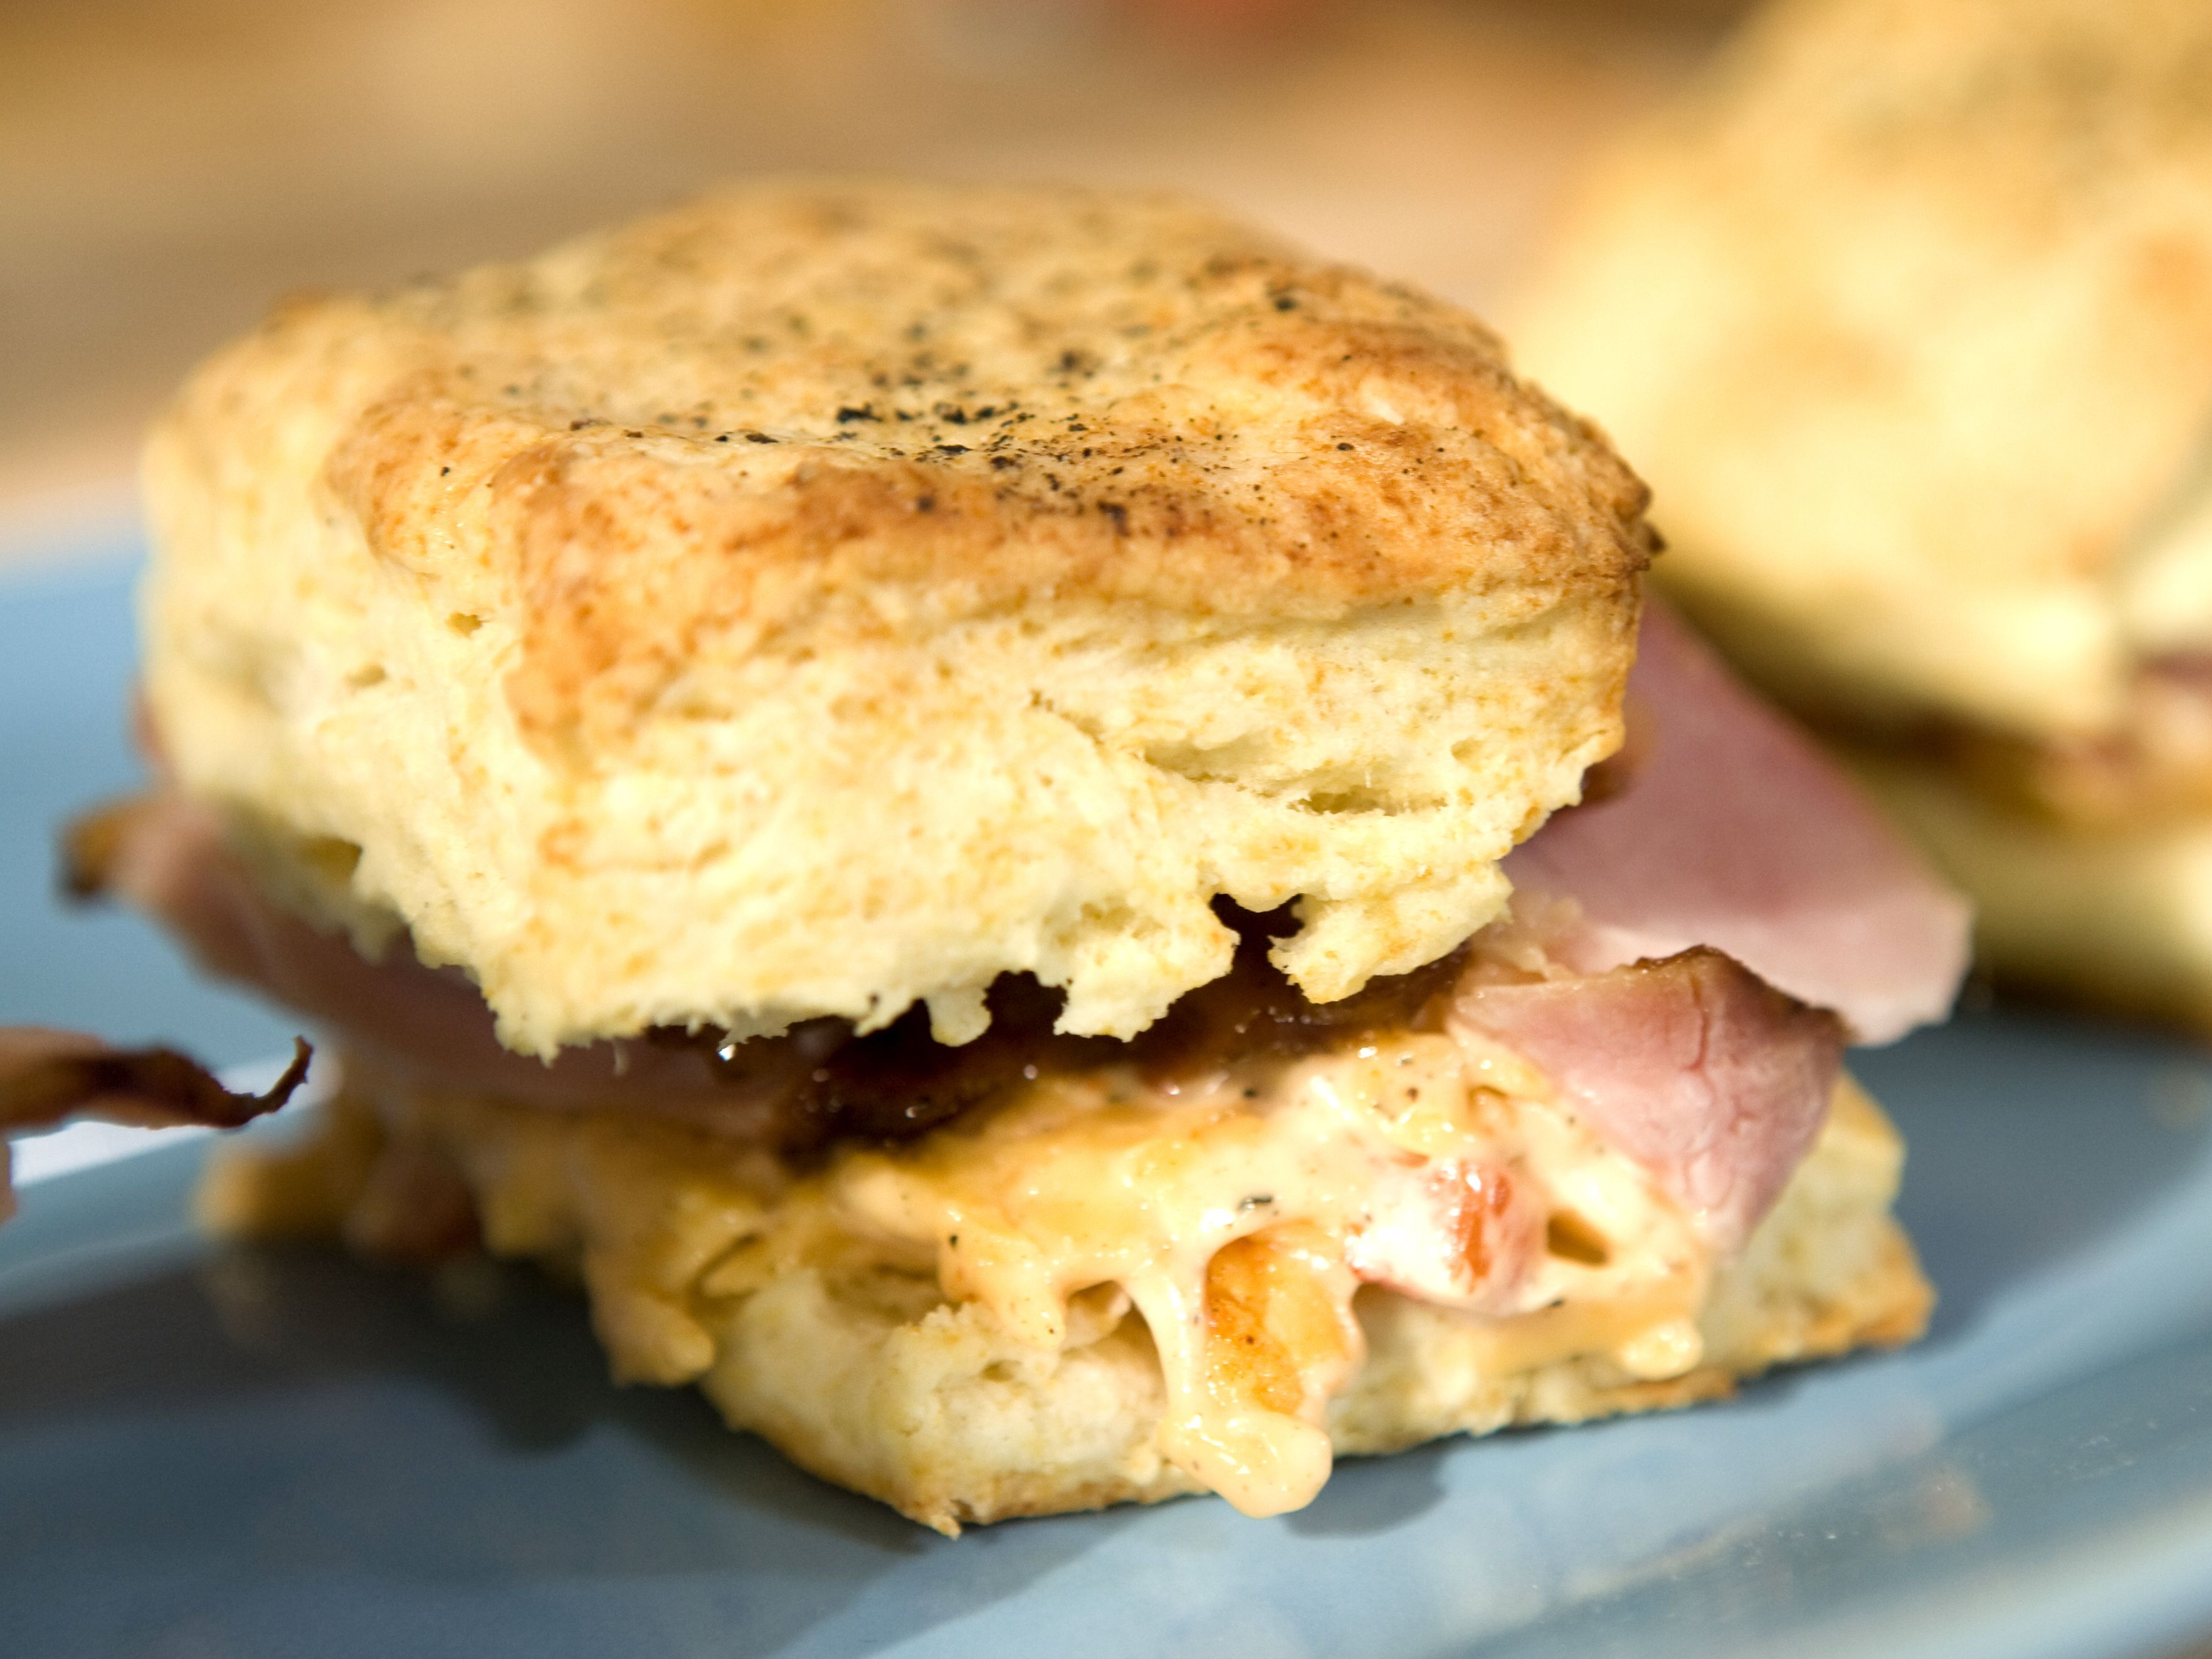 Buttermilk Biscuits Recipe Bobby Flay Food Network Food Network Recipes Buttermilk Biscuits Recipes